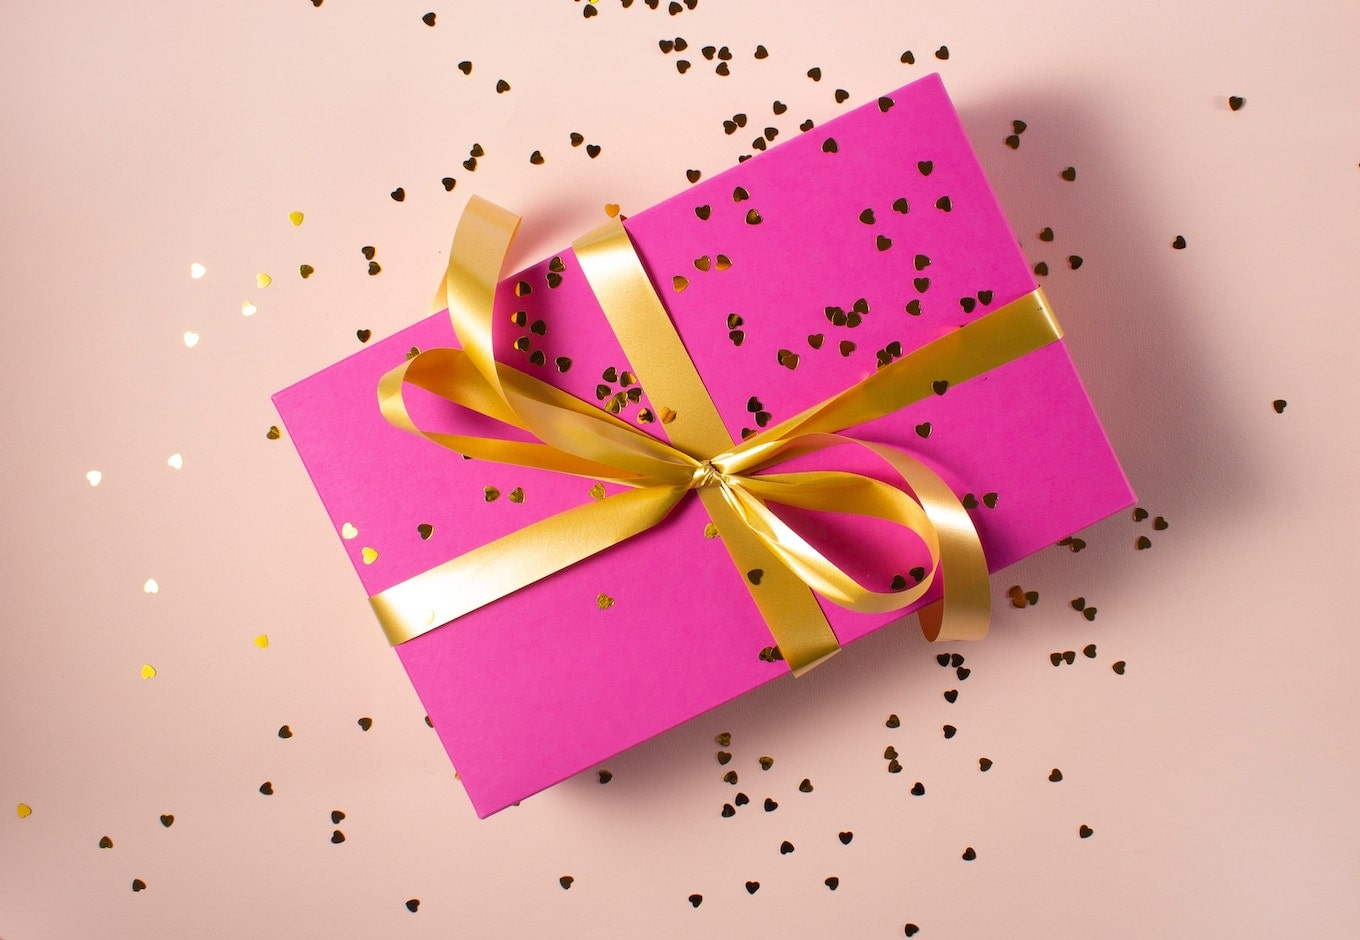 Pink gift box with gold ribbon